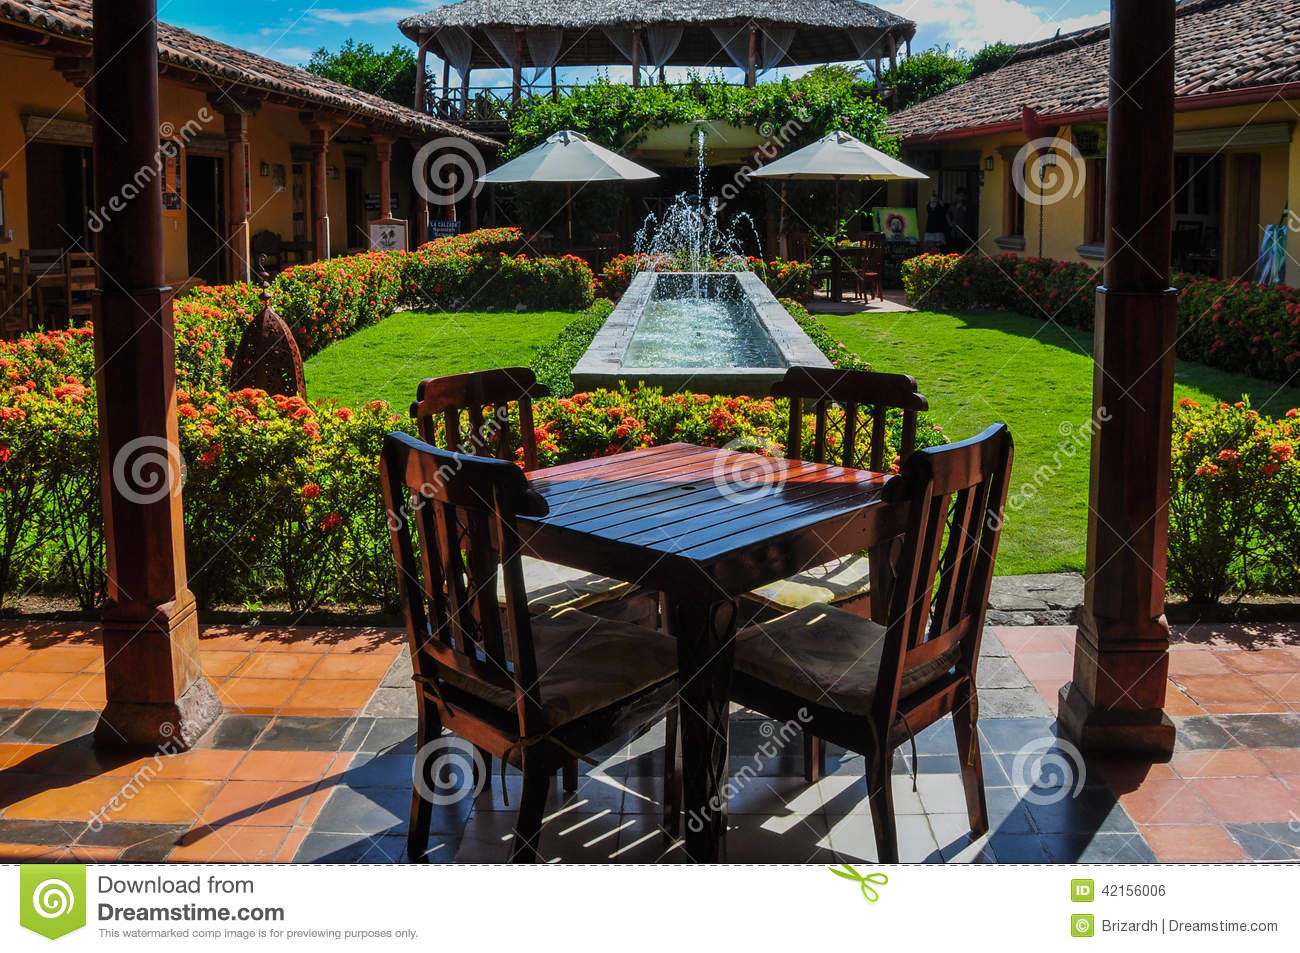 Wooden table in jardin granada nicaragua stock photo for Table jardin beauty